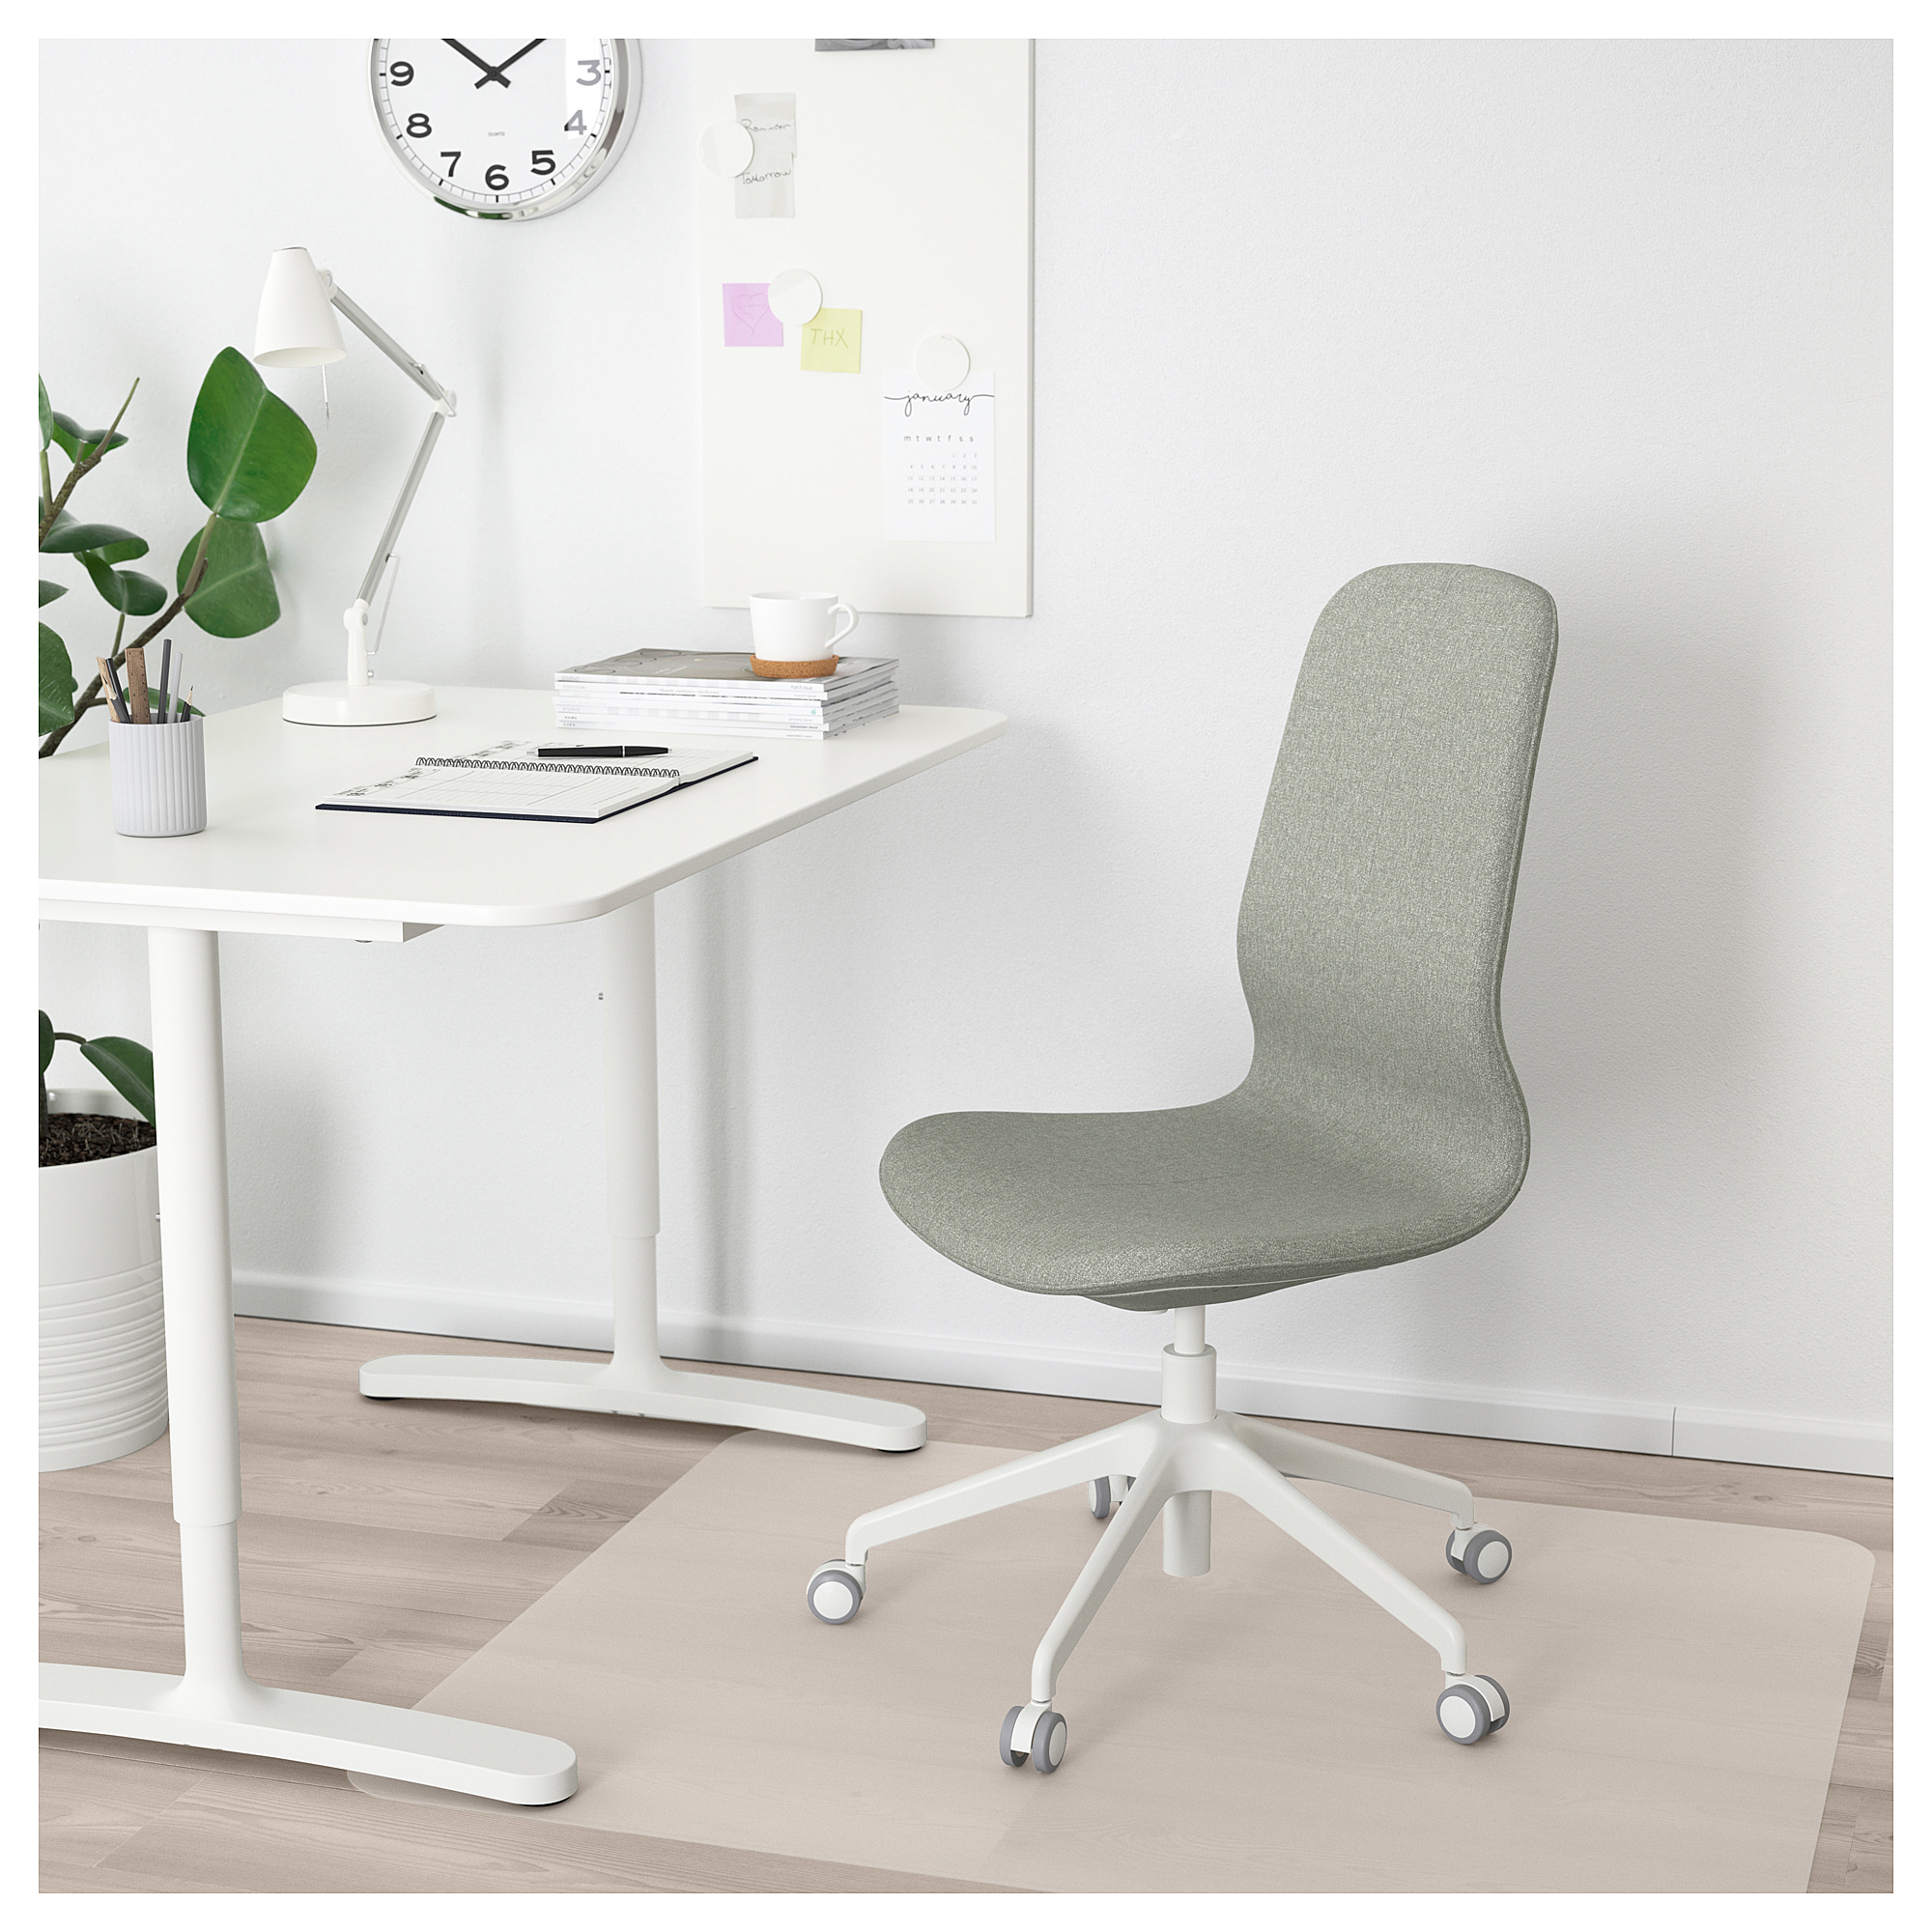 Cool Ikea Langfjall Office Chair Gunnared Light Green White In Gmtry Best Dining Table And Chair Ideas Images Gmtryco